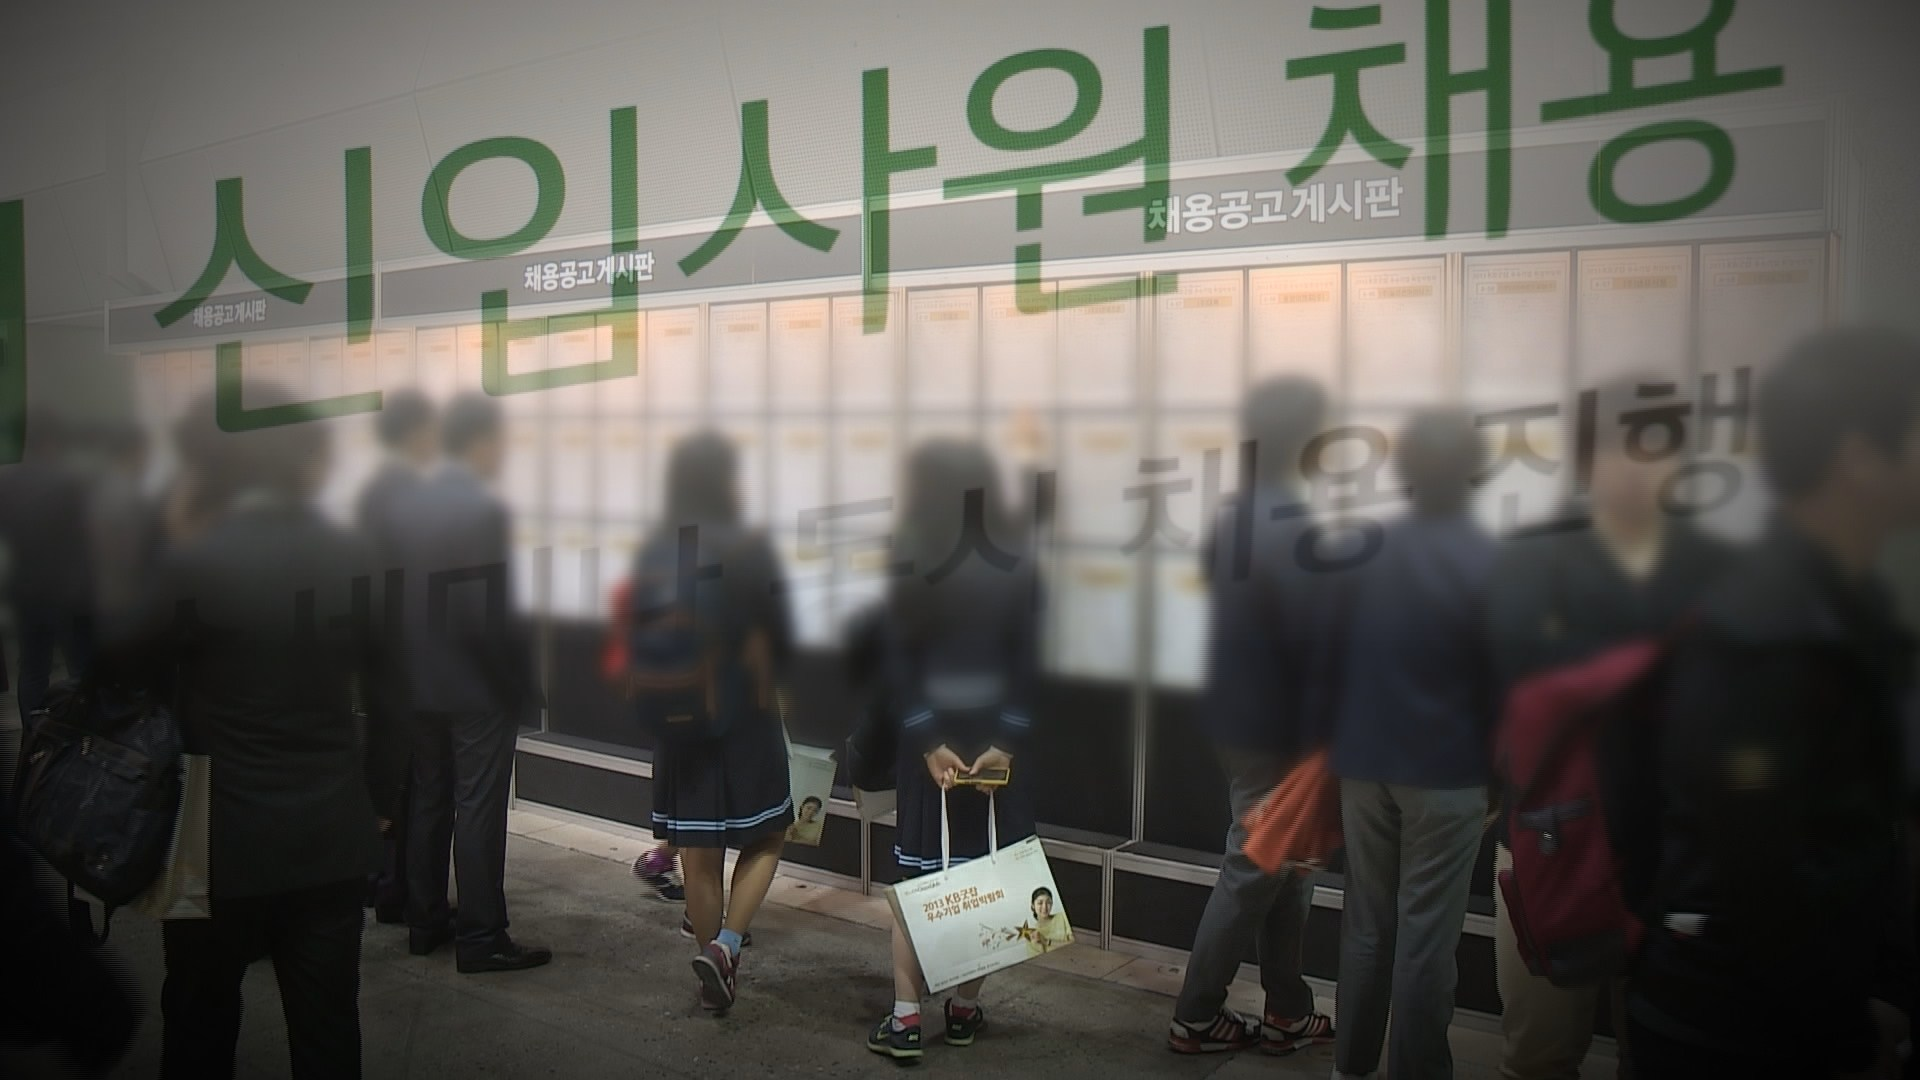 Over 20% of Unemployed S. Koreans Age 25-29